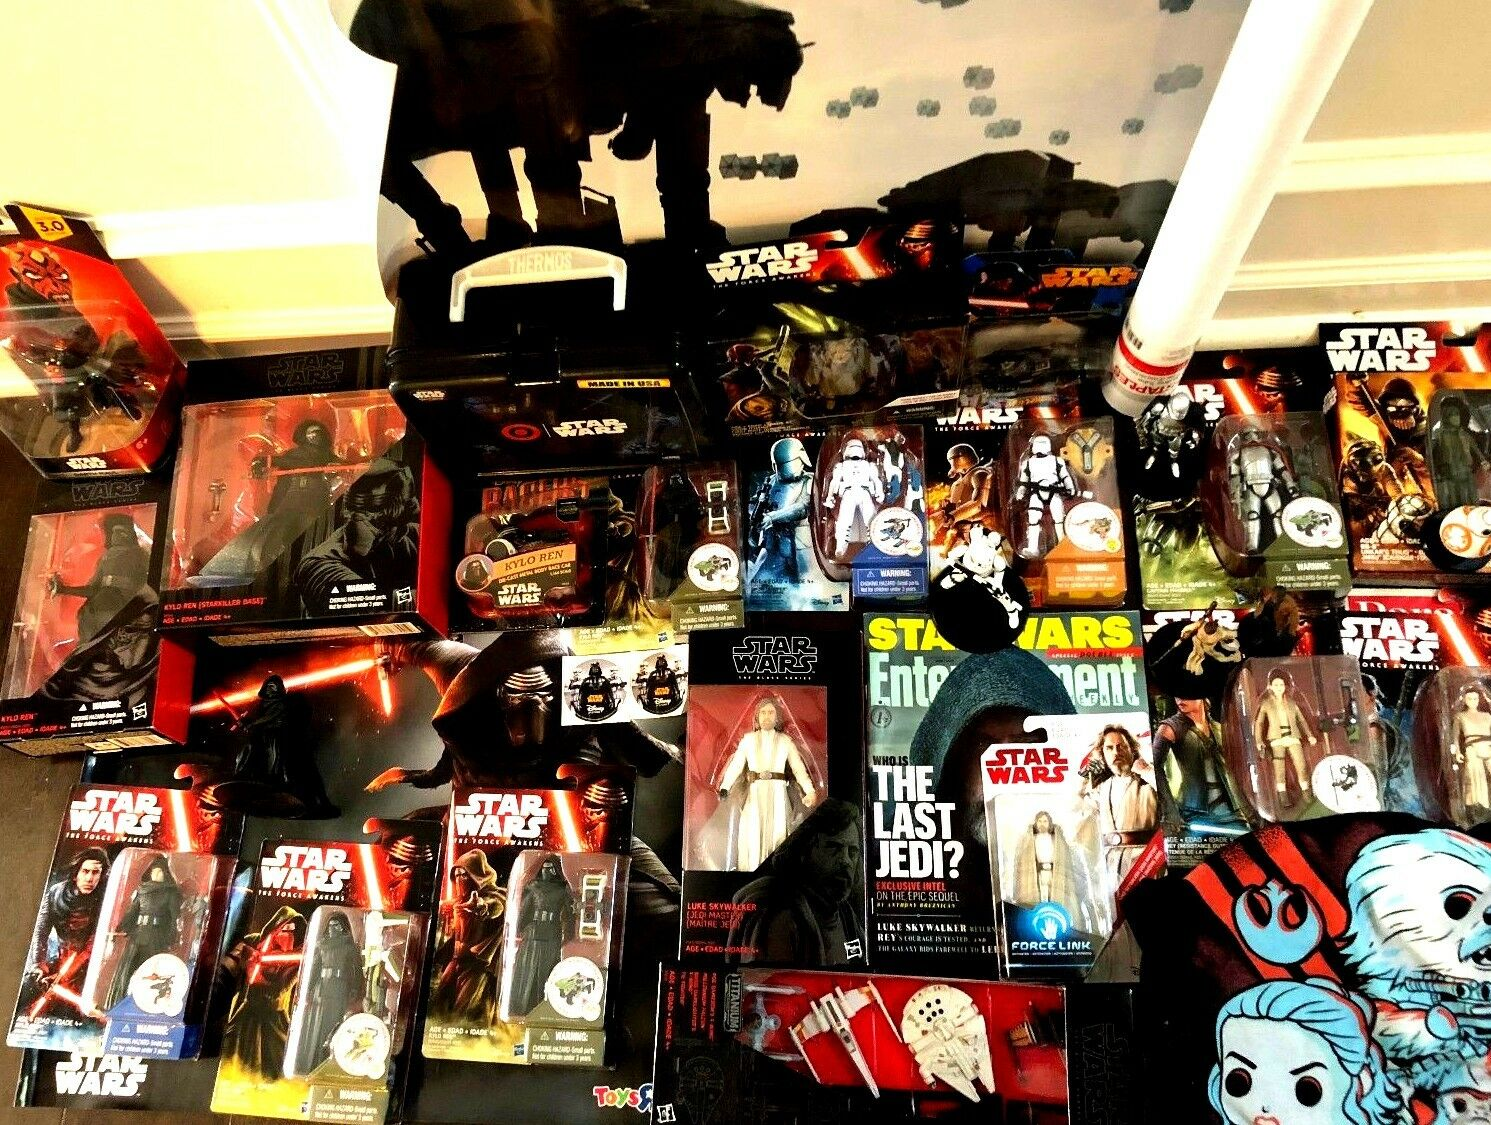 HUGE Lot of Star Wars The Force Awakens and Last Jedi Figures Toys Shirt + MORE